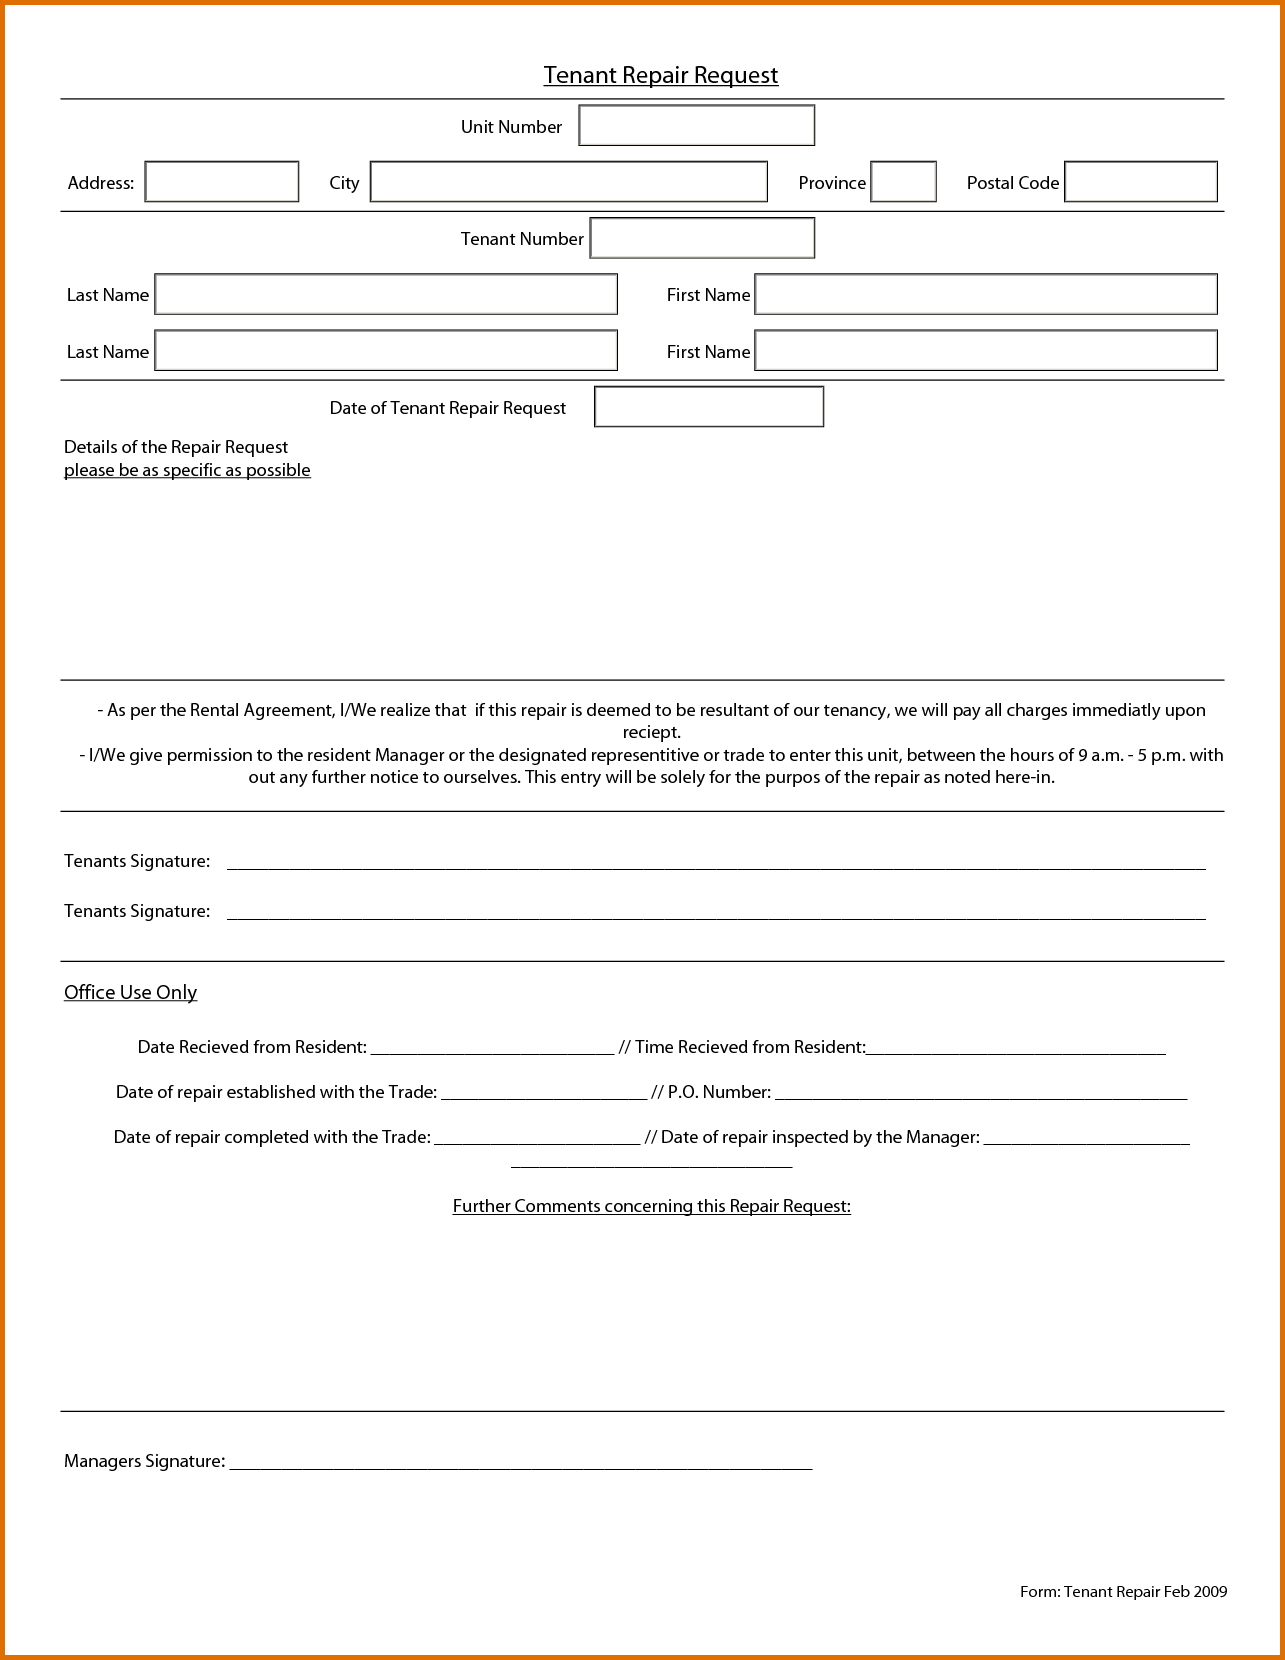 maintenance request form template   Tier.brianhenry.co